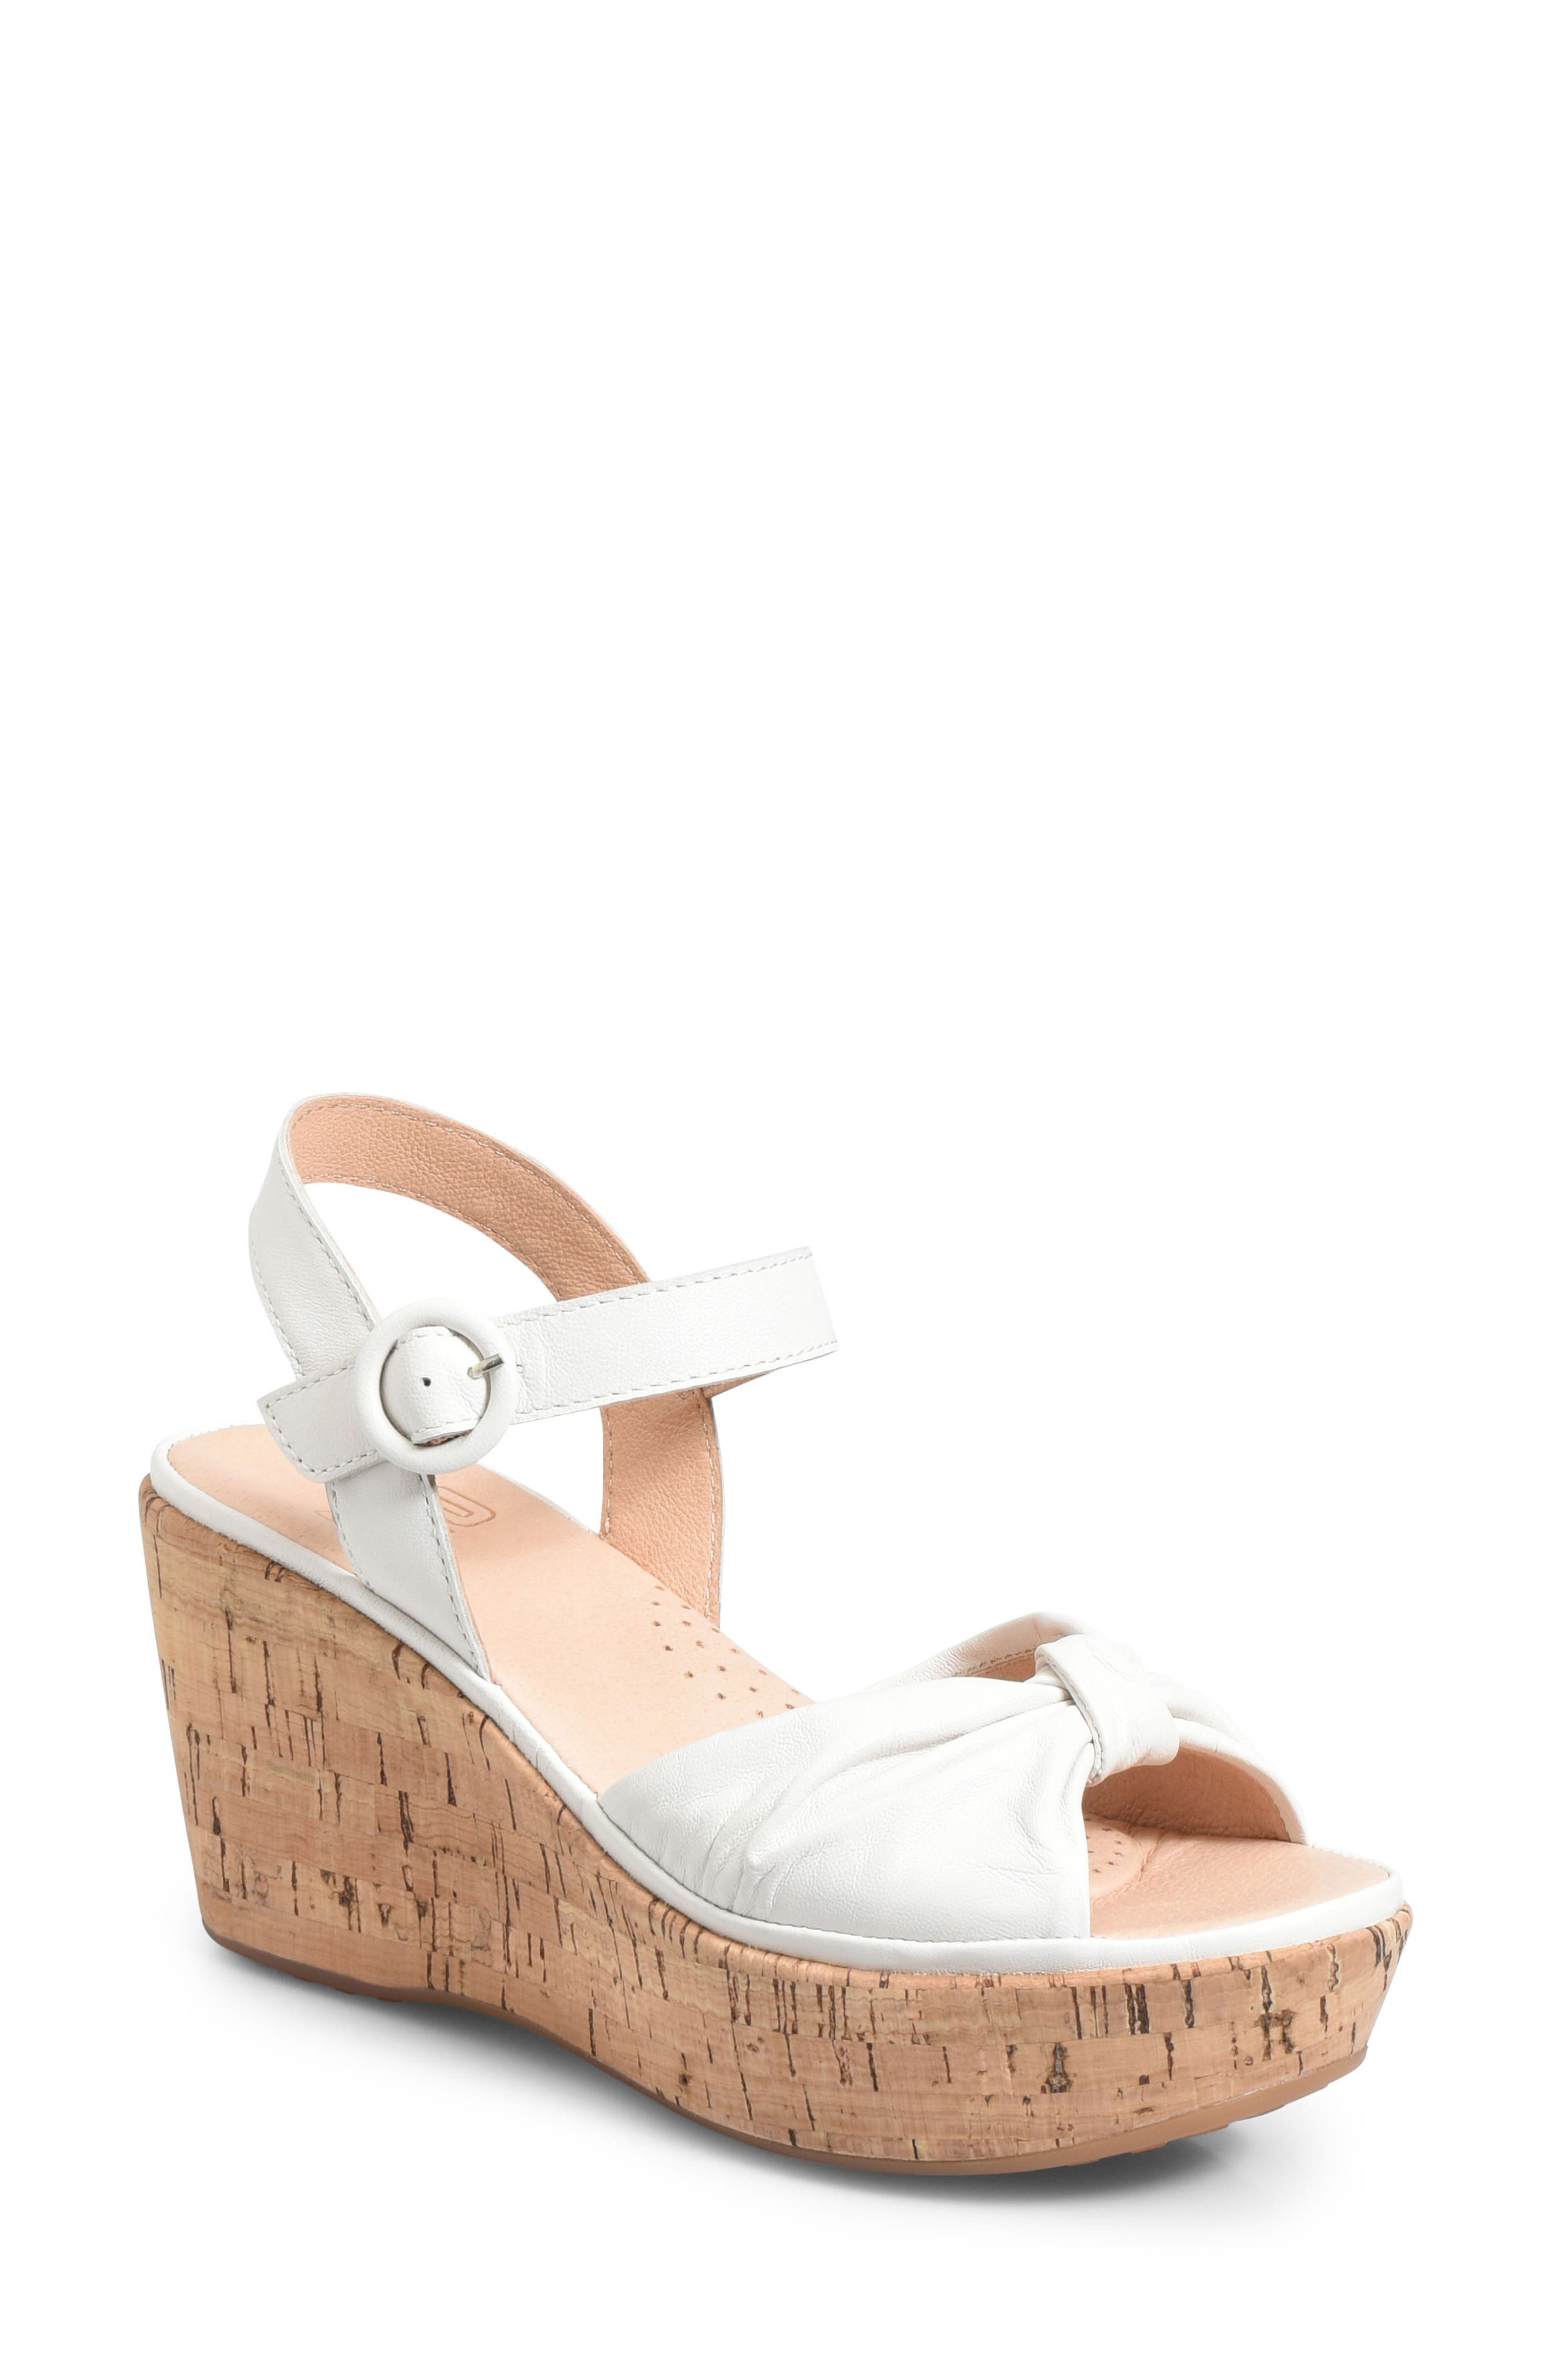 Heavenly Platform Wedge Sandal,                             Main thumbnail 1, color,                             White Leather